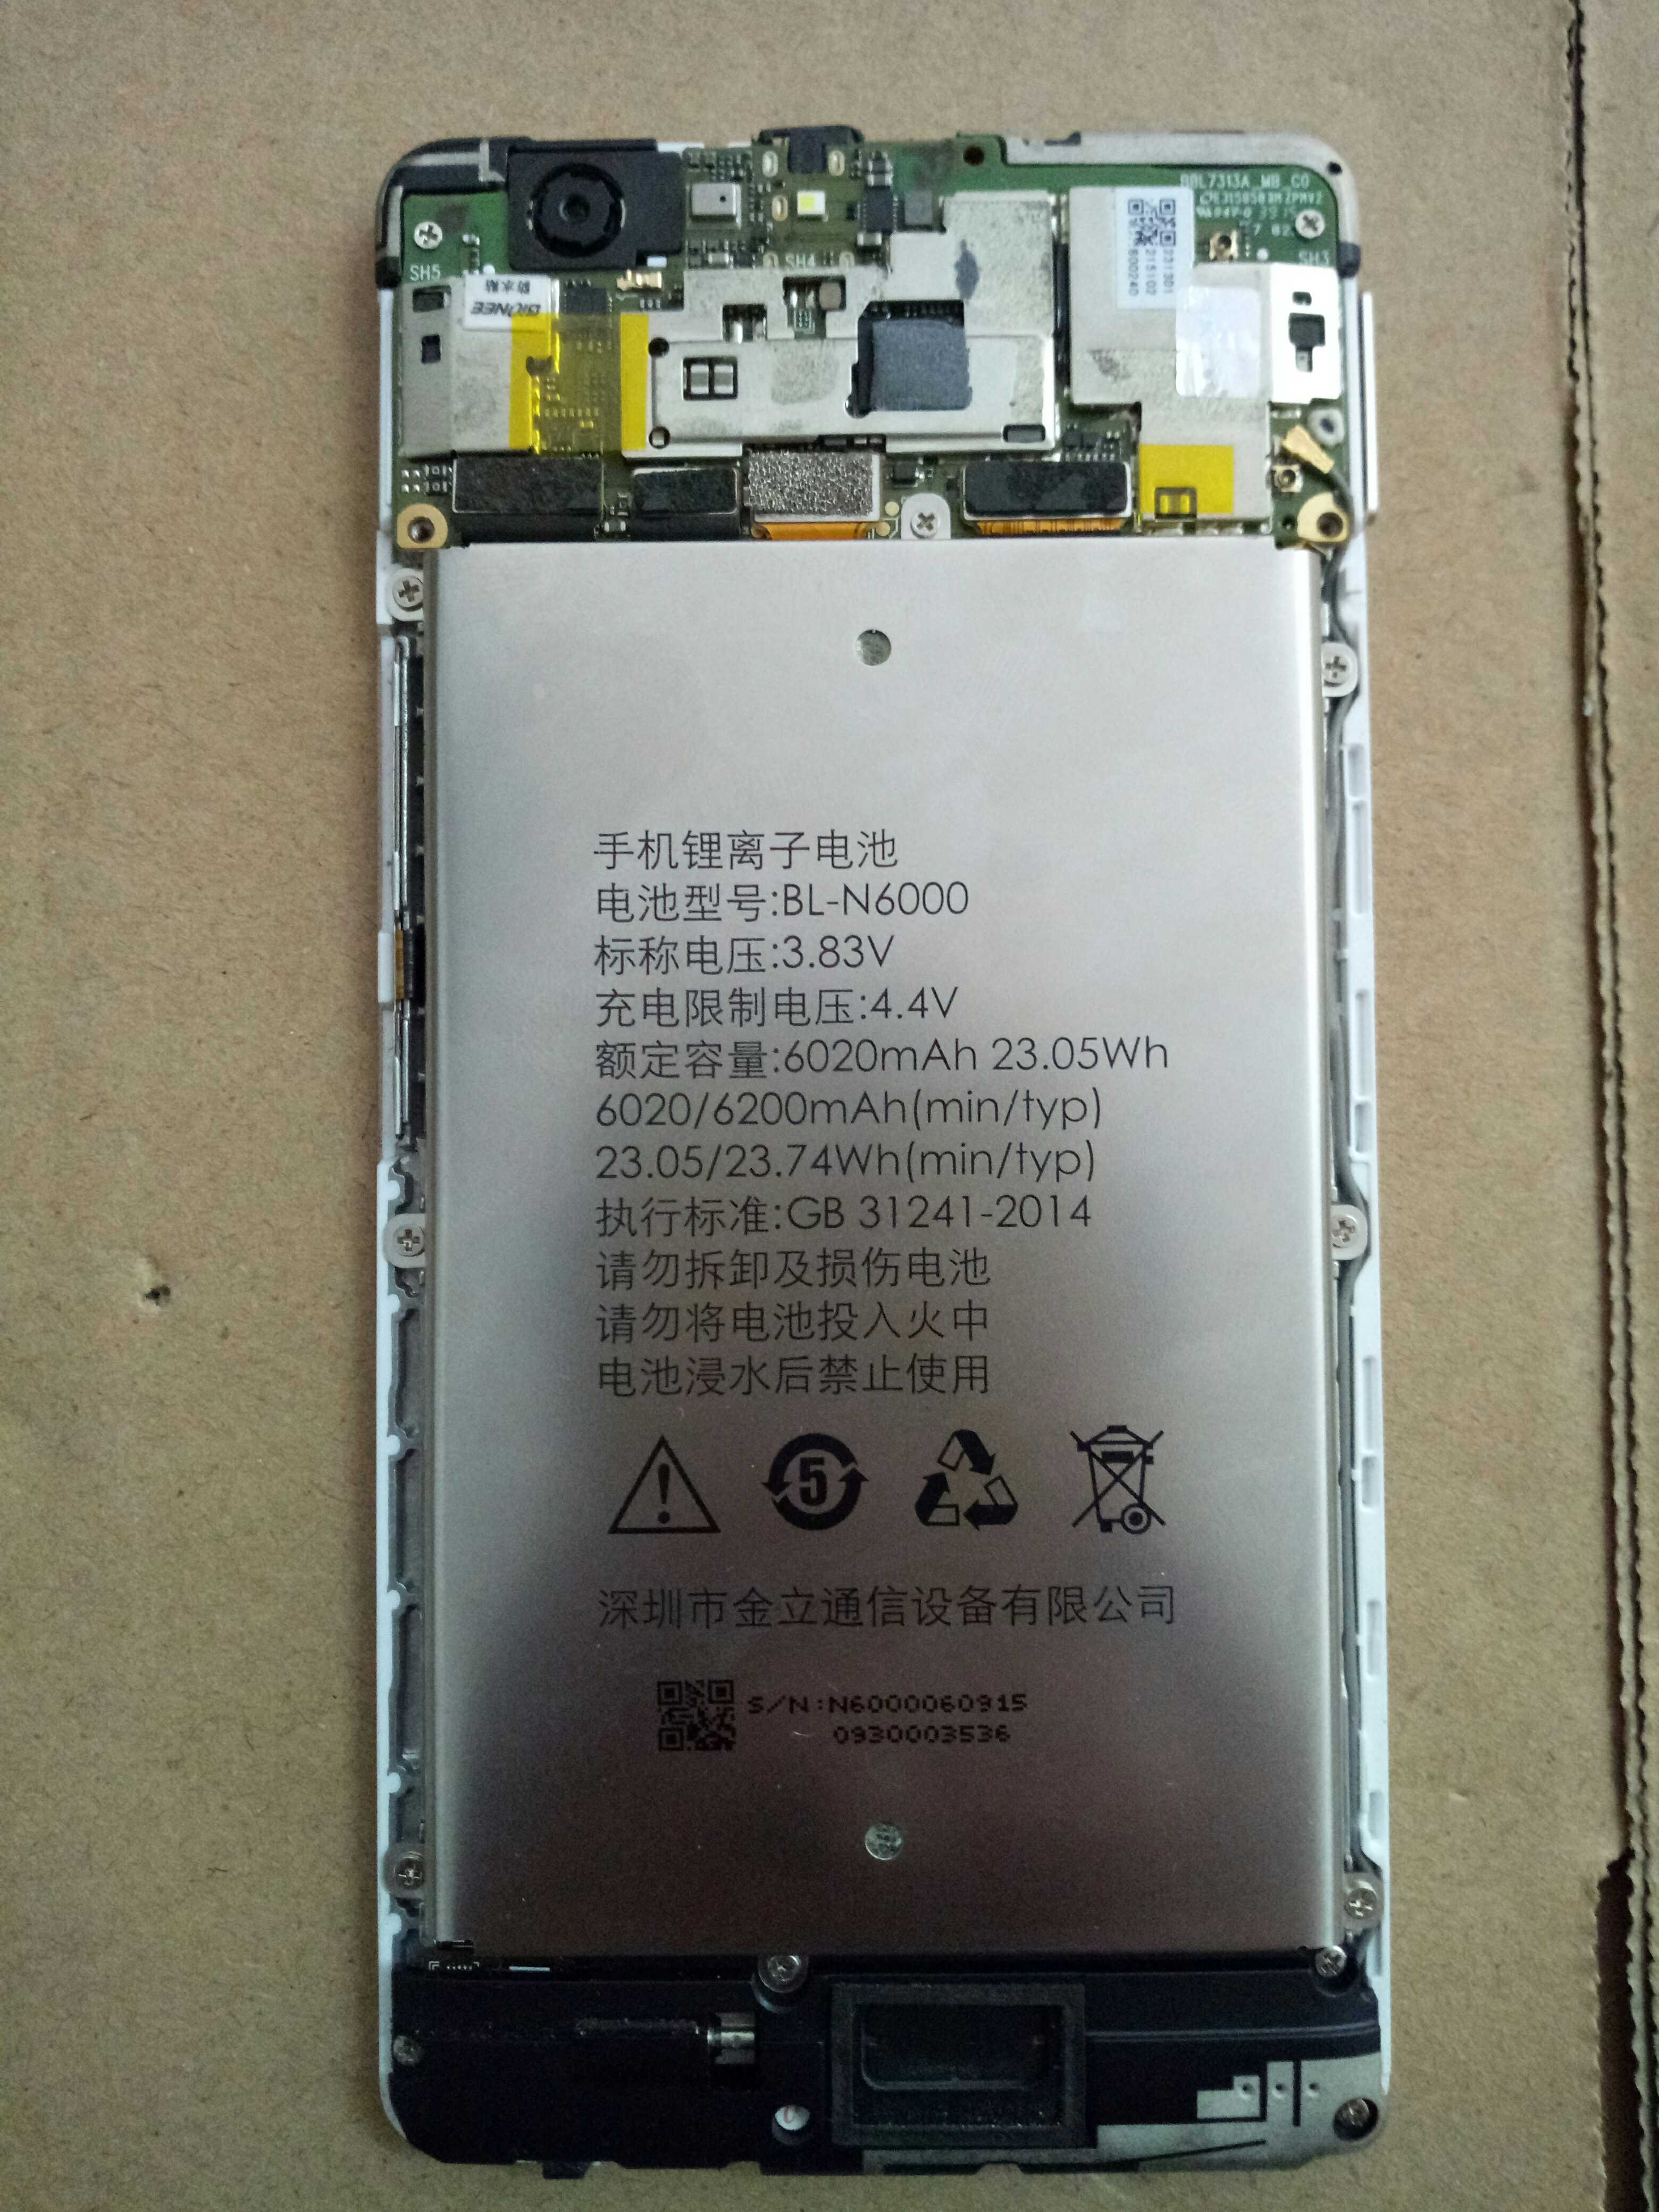 Jin M5 disassemble the motherboard battery charging board card camera